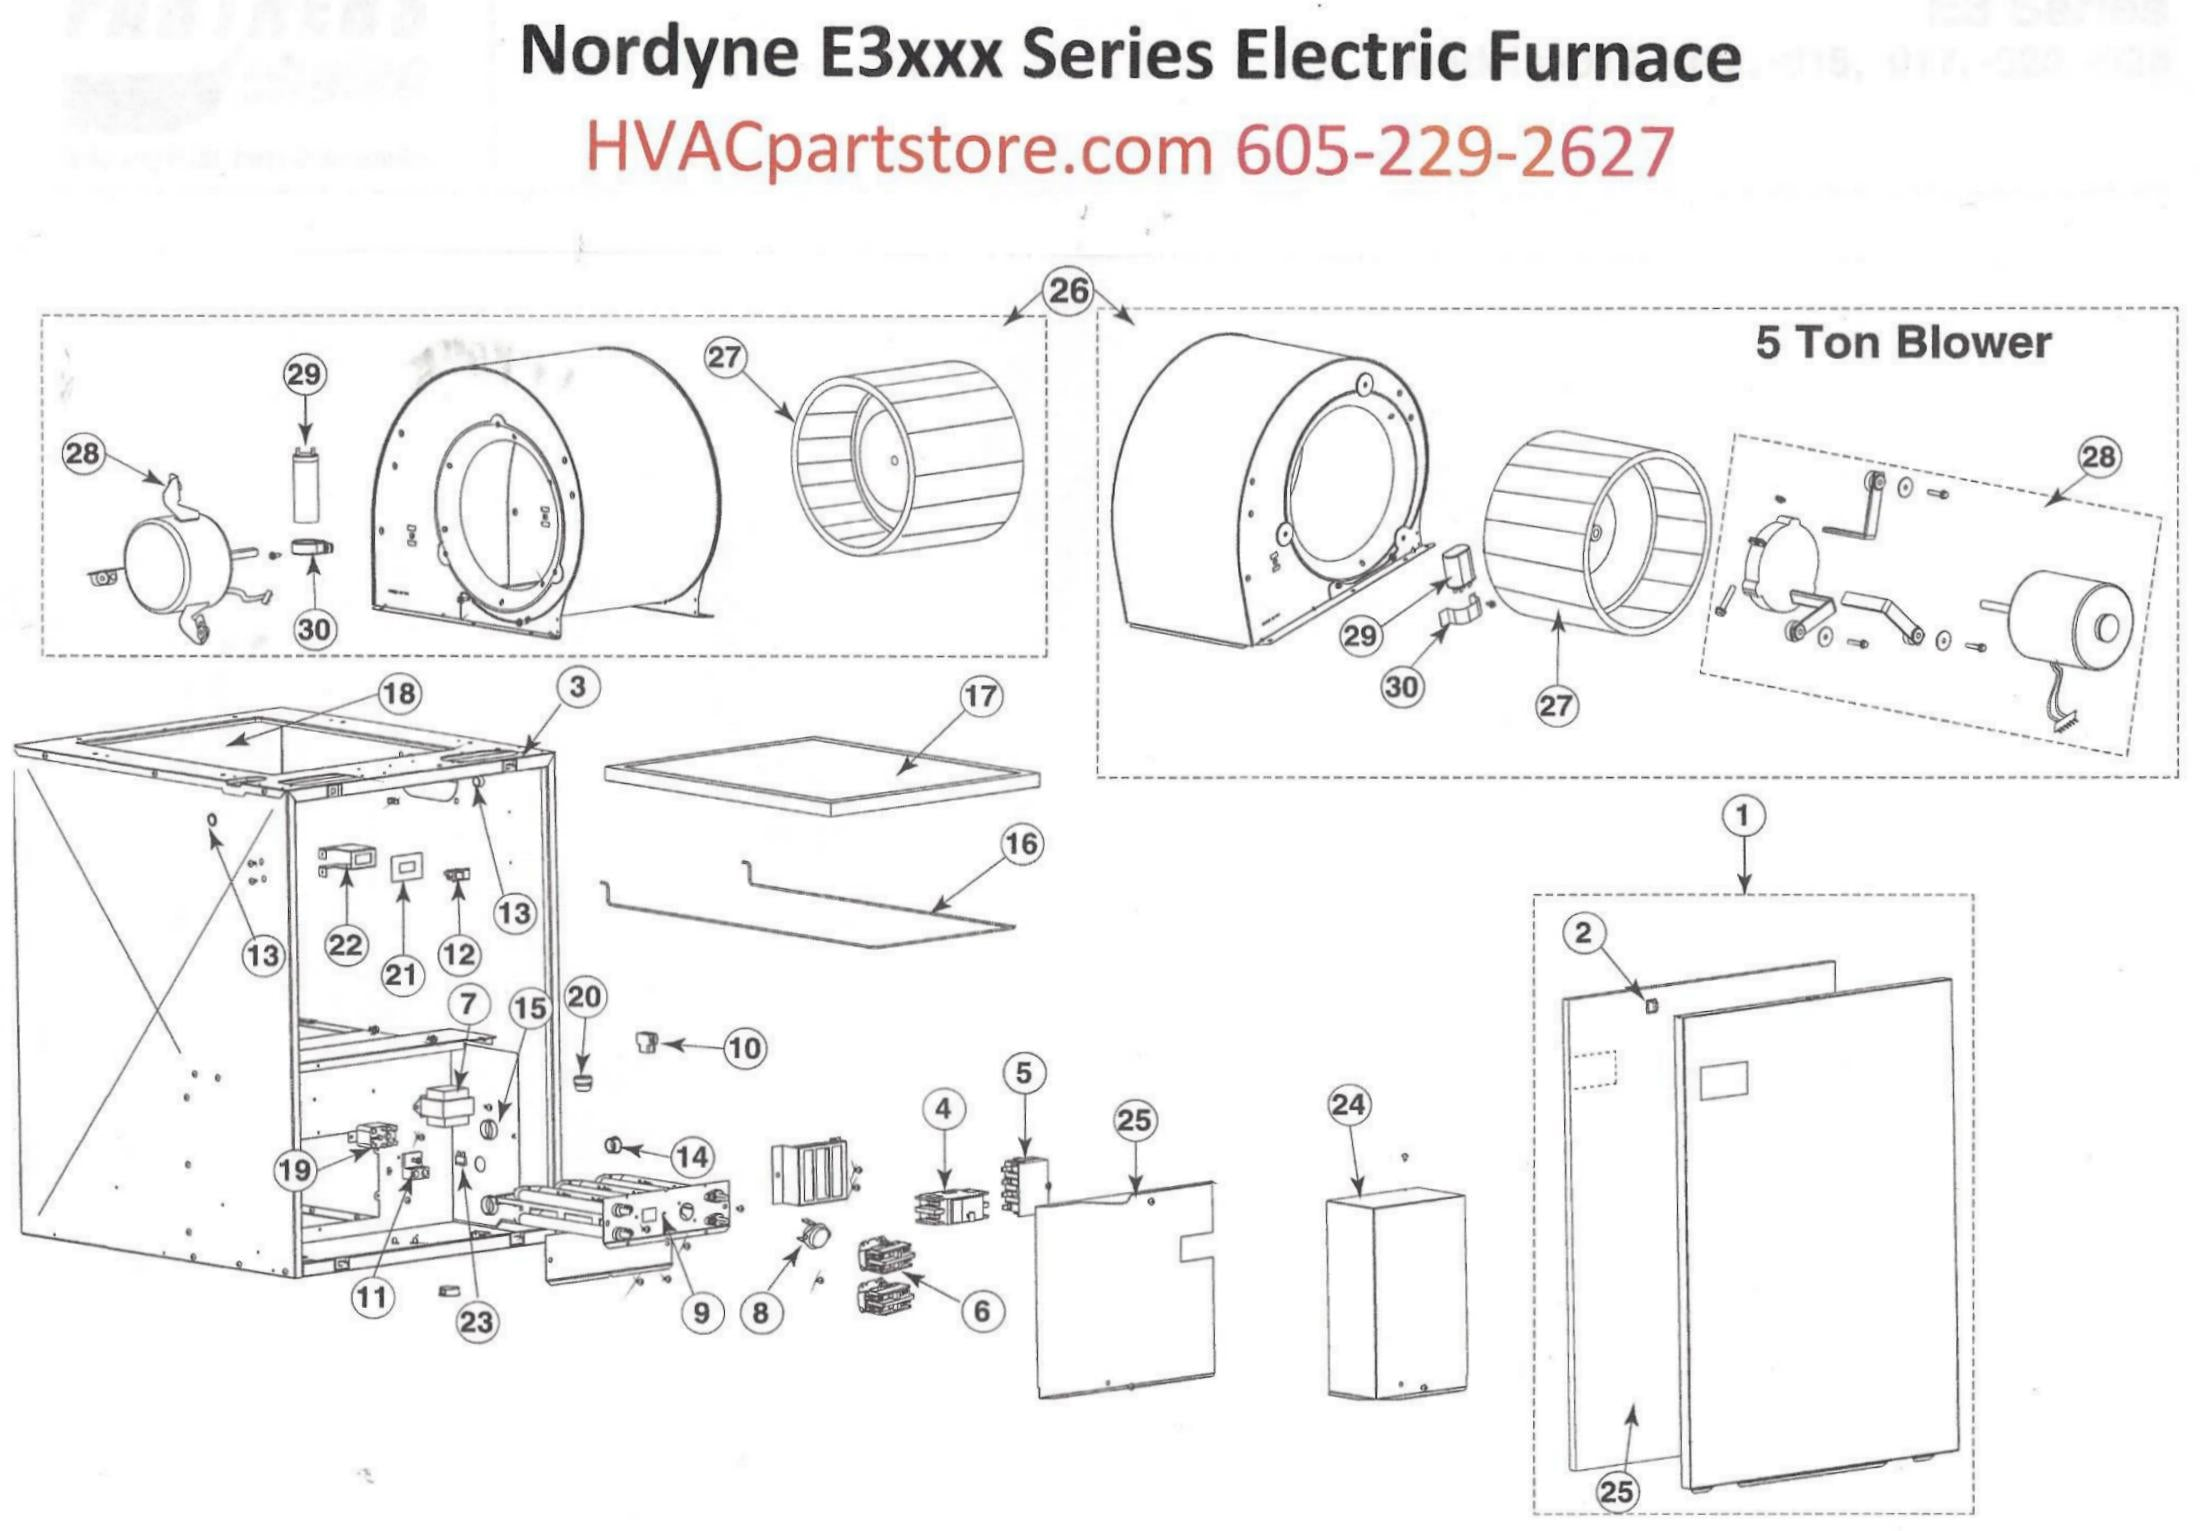 e3015 nordyne electric furnace parts  u2013 hvacpartstore